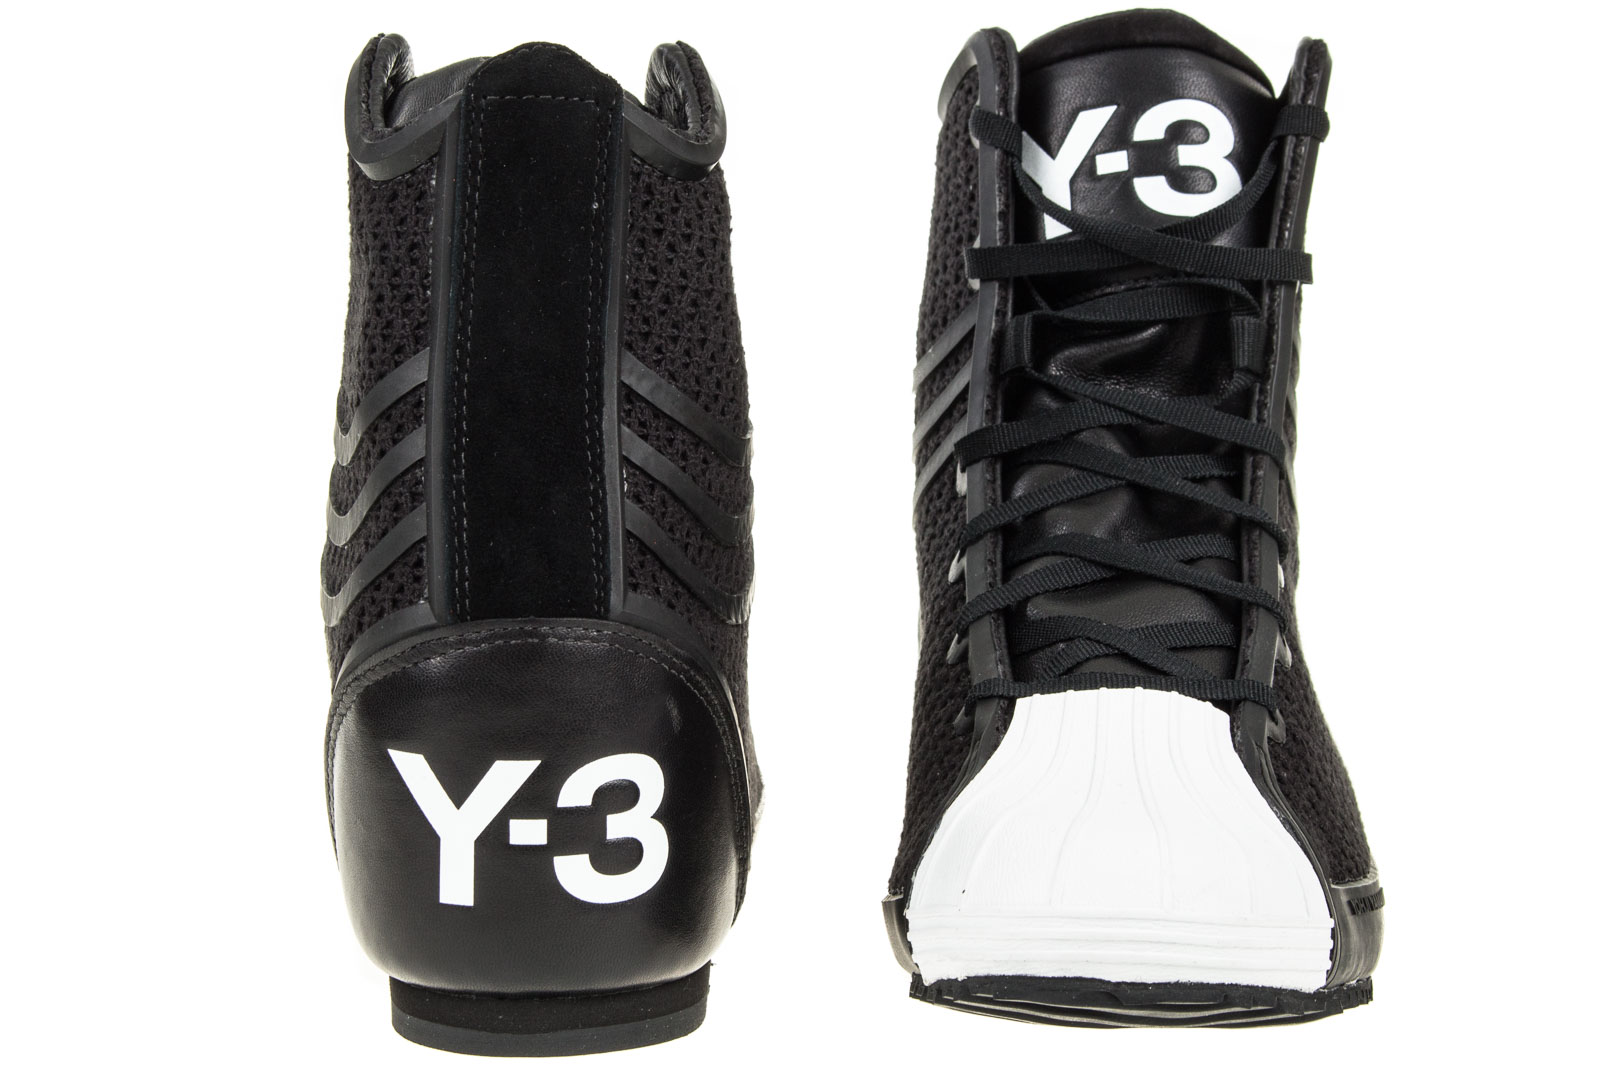 baudach schuster y 3 yohji yamamoto sneaker y 3 nicke. Black Bedroom Furniture Sets. Home Design Ideas